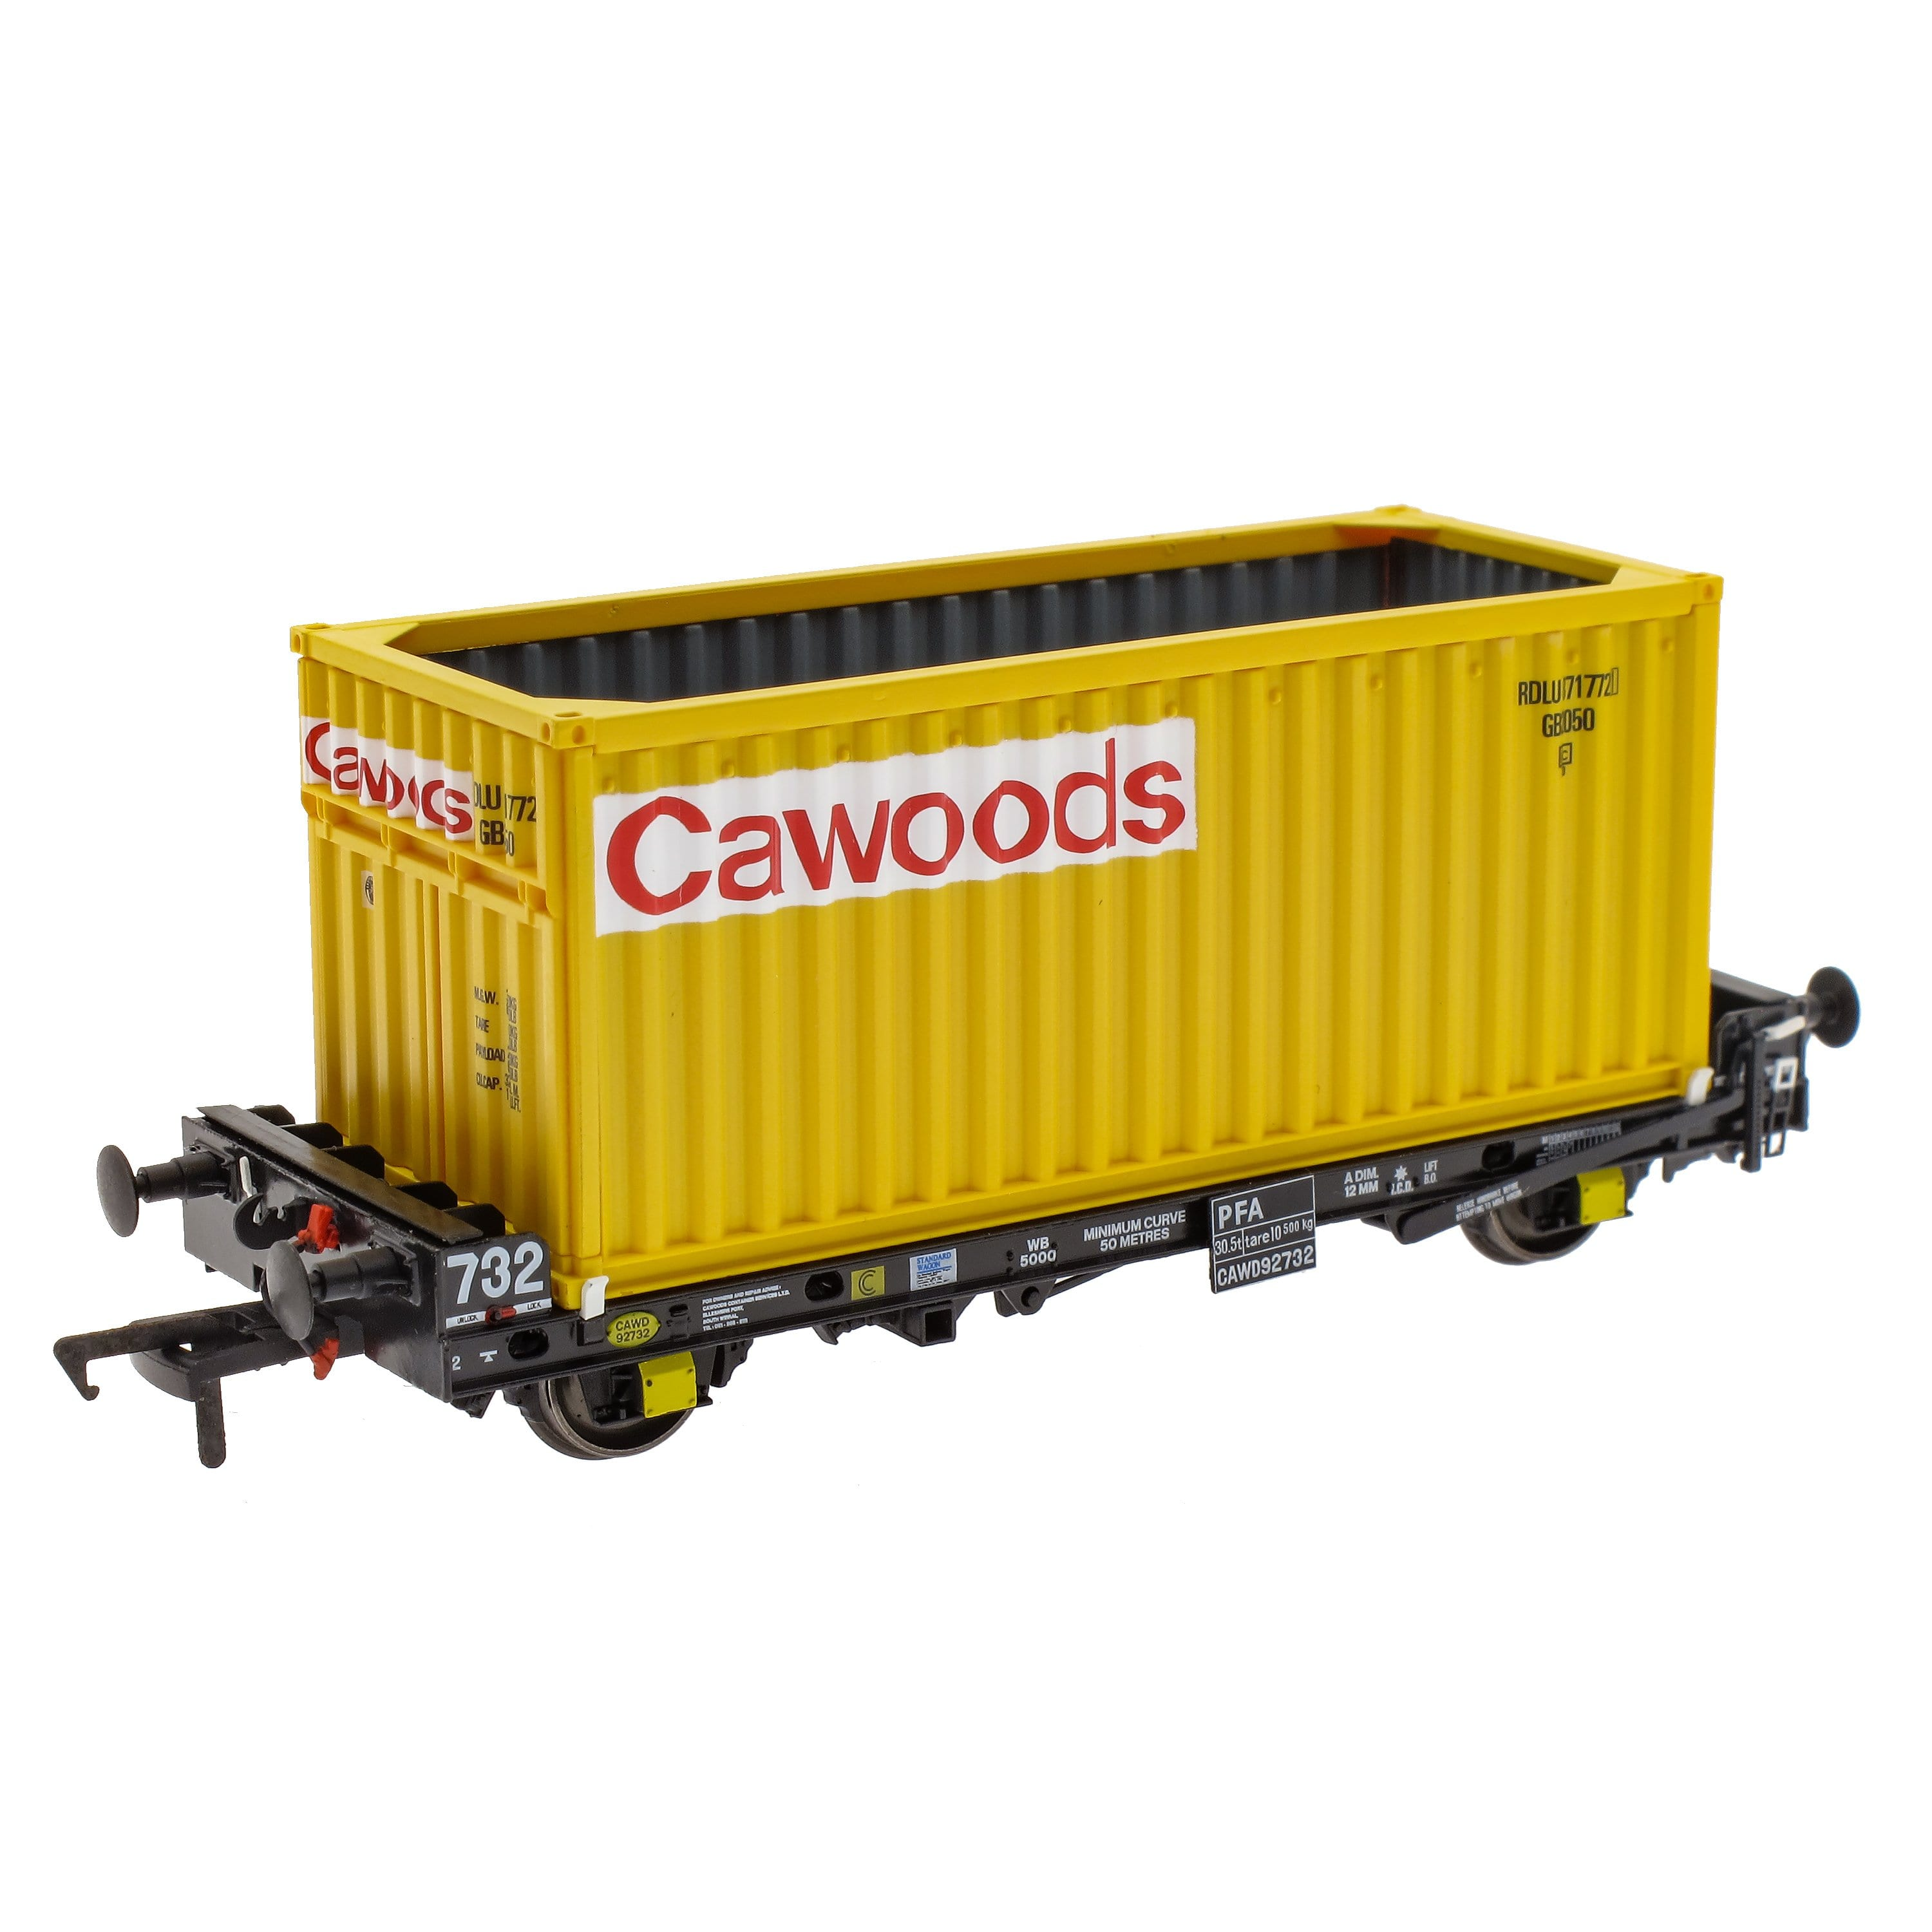 PFA - Cawoods Coal Containers S